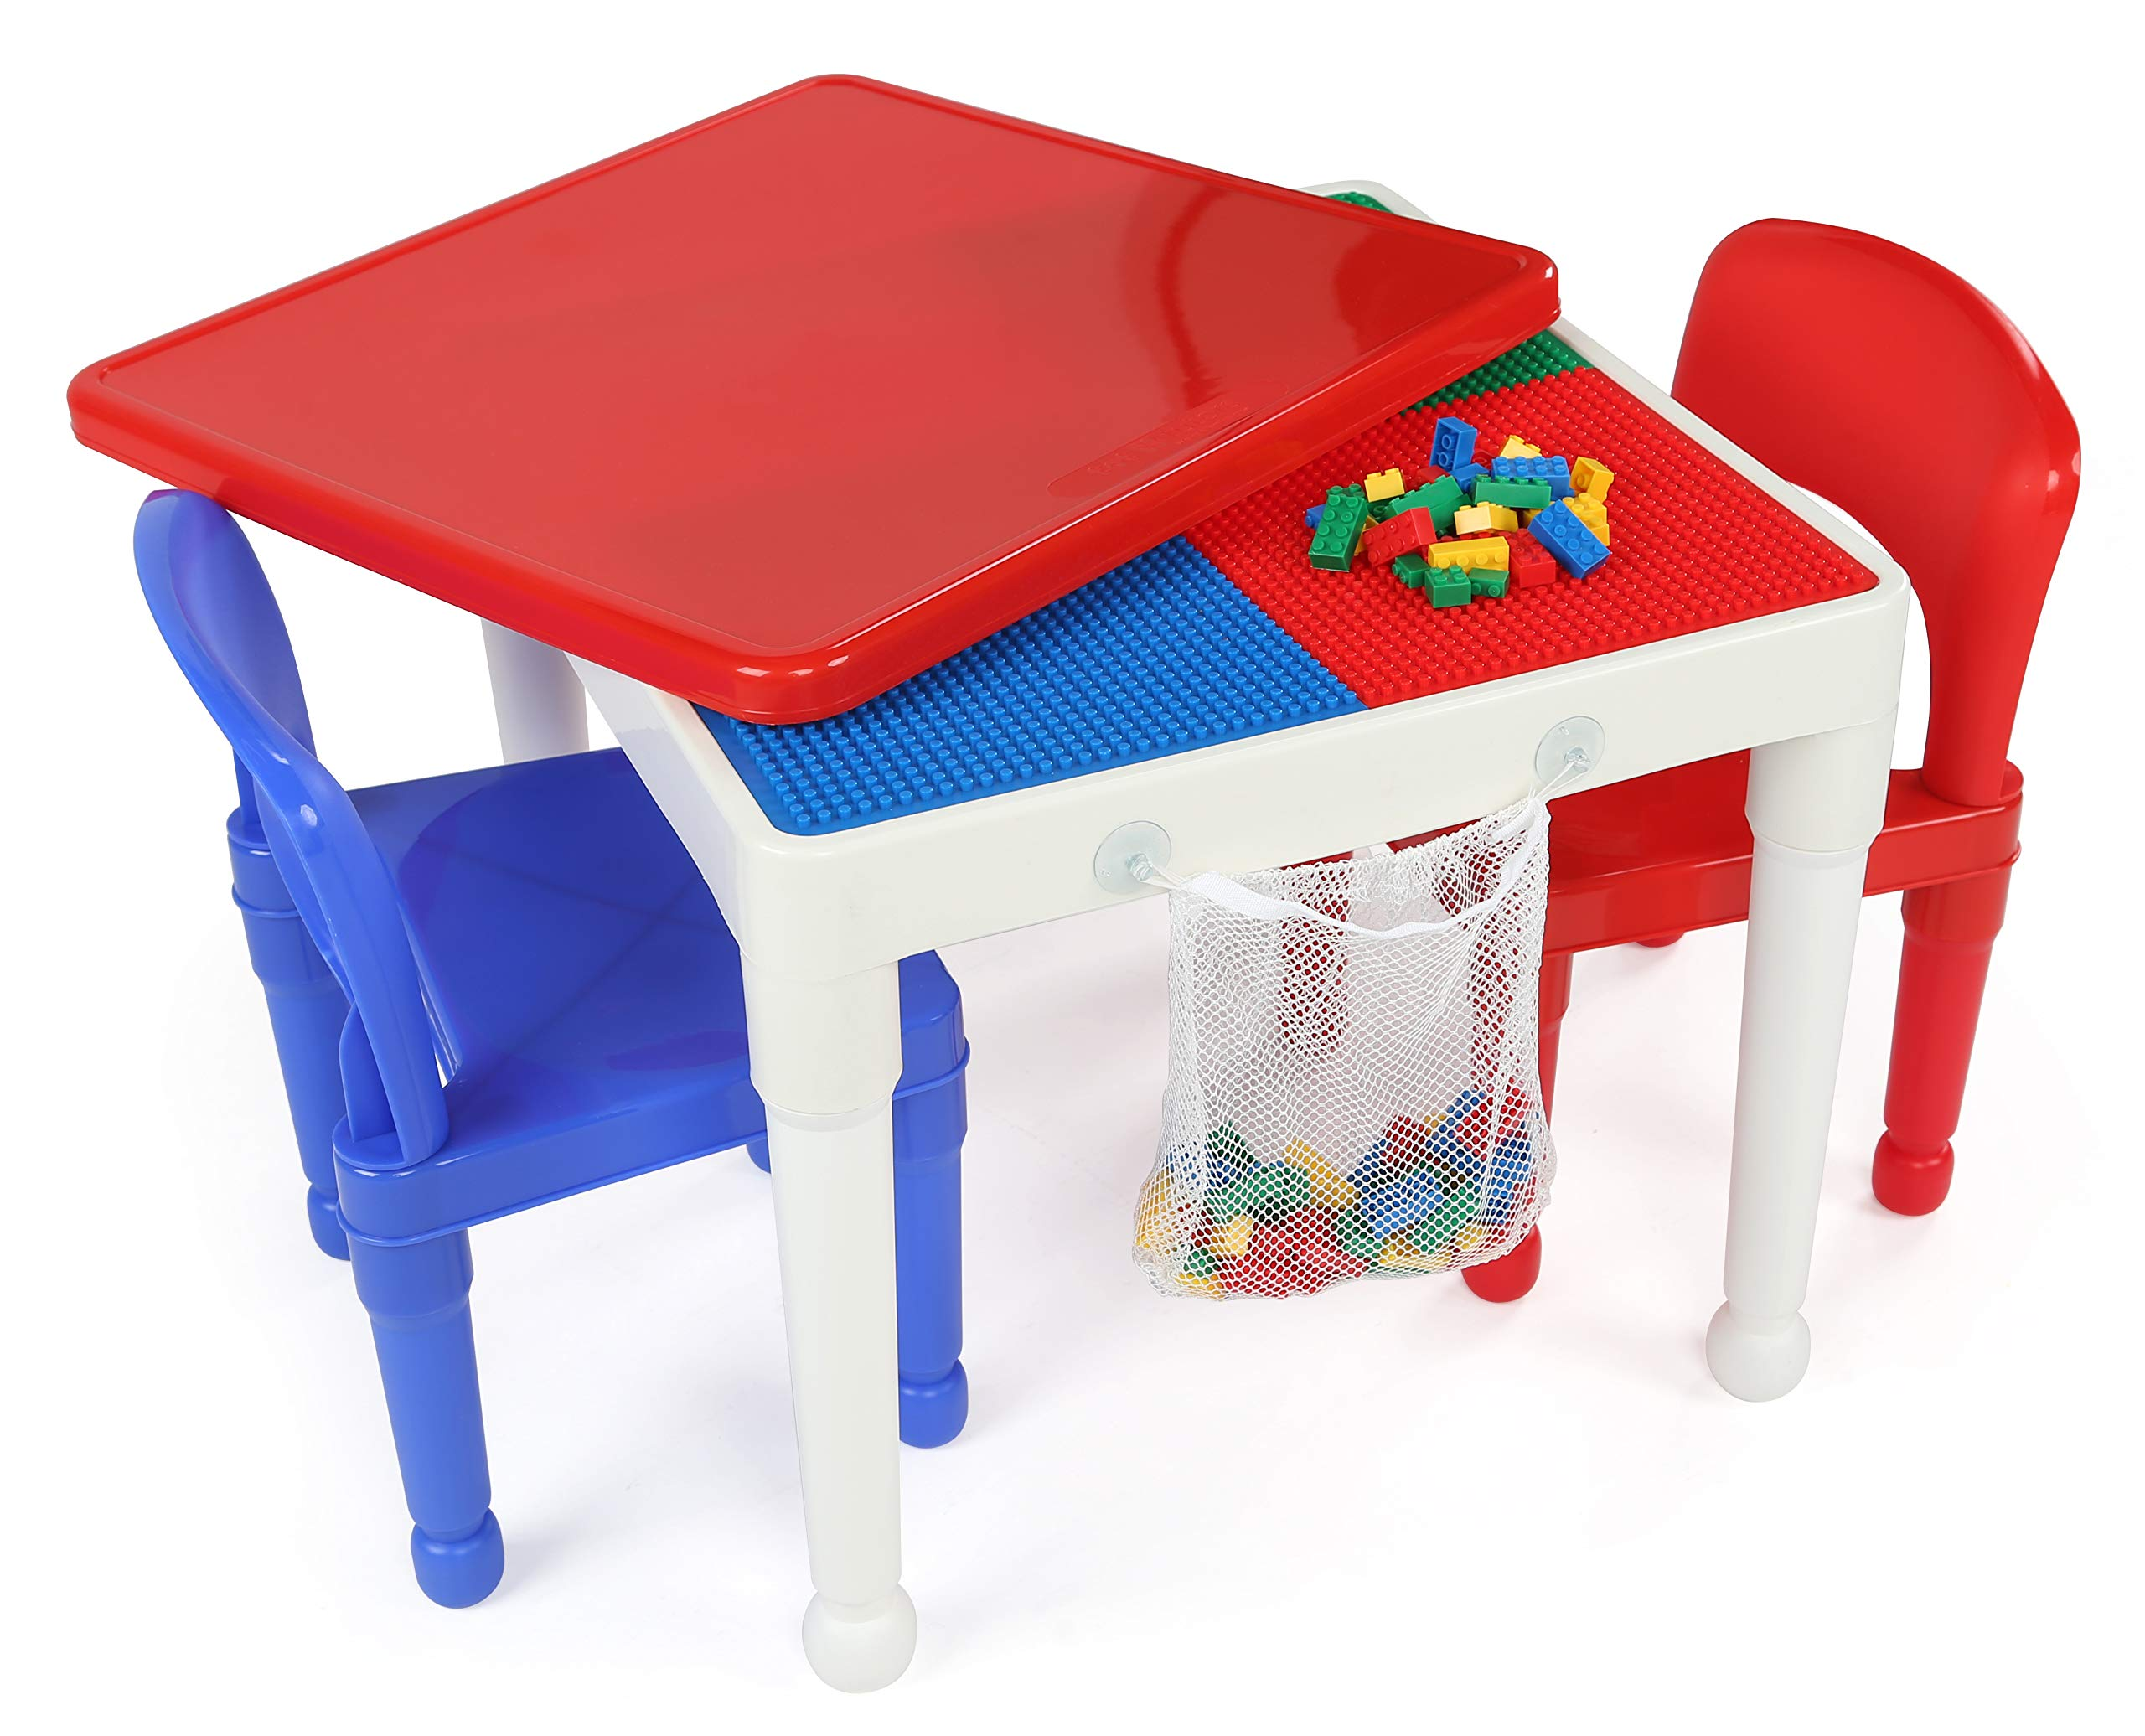 Tot Tutors Kids 2-in-1 Plastic Building Blocks-Compatible Activity Table and 2 Chairs Set, Square, Primary Colors by Tot Tutors